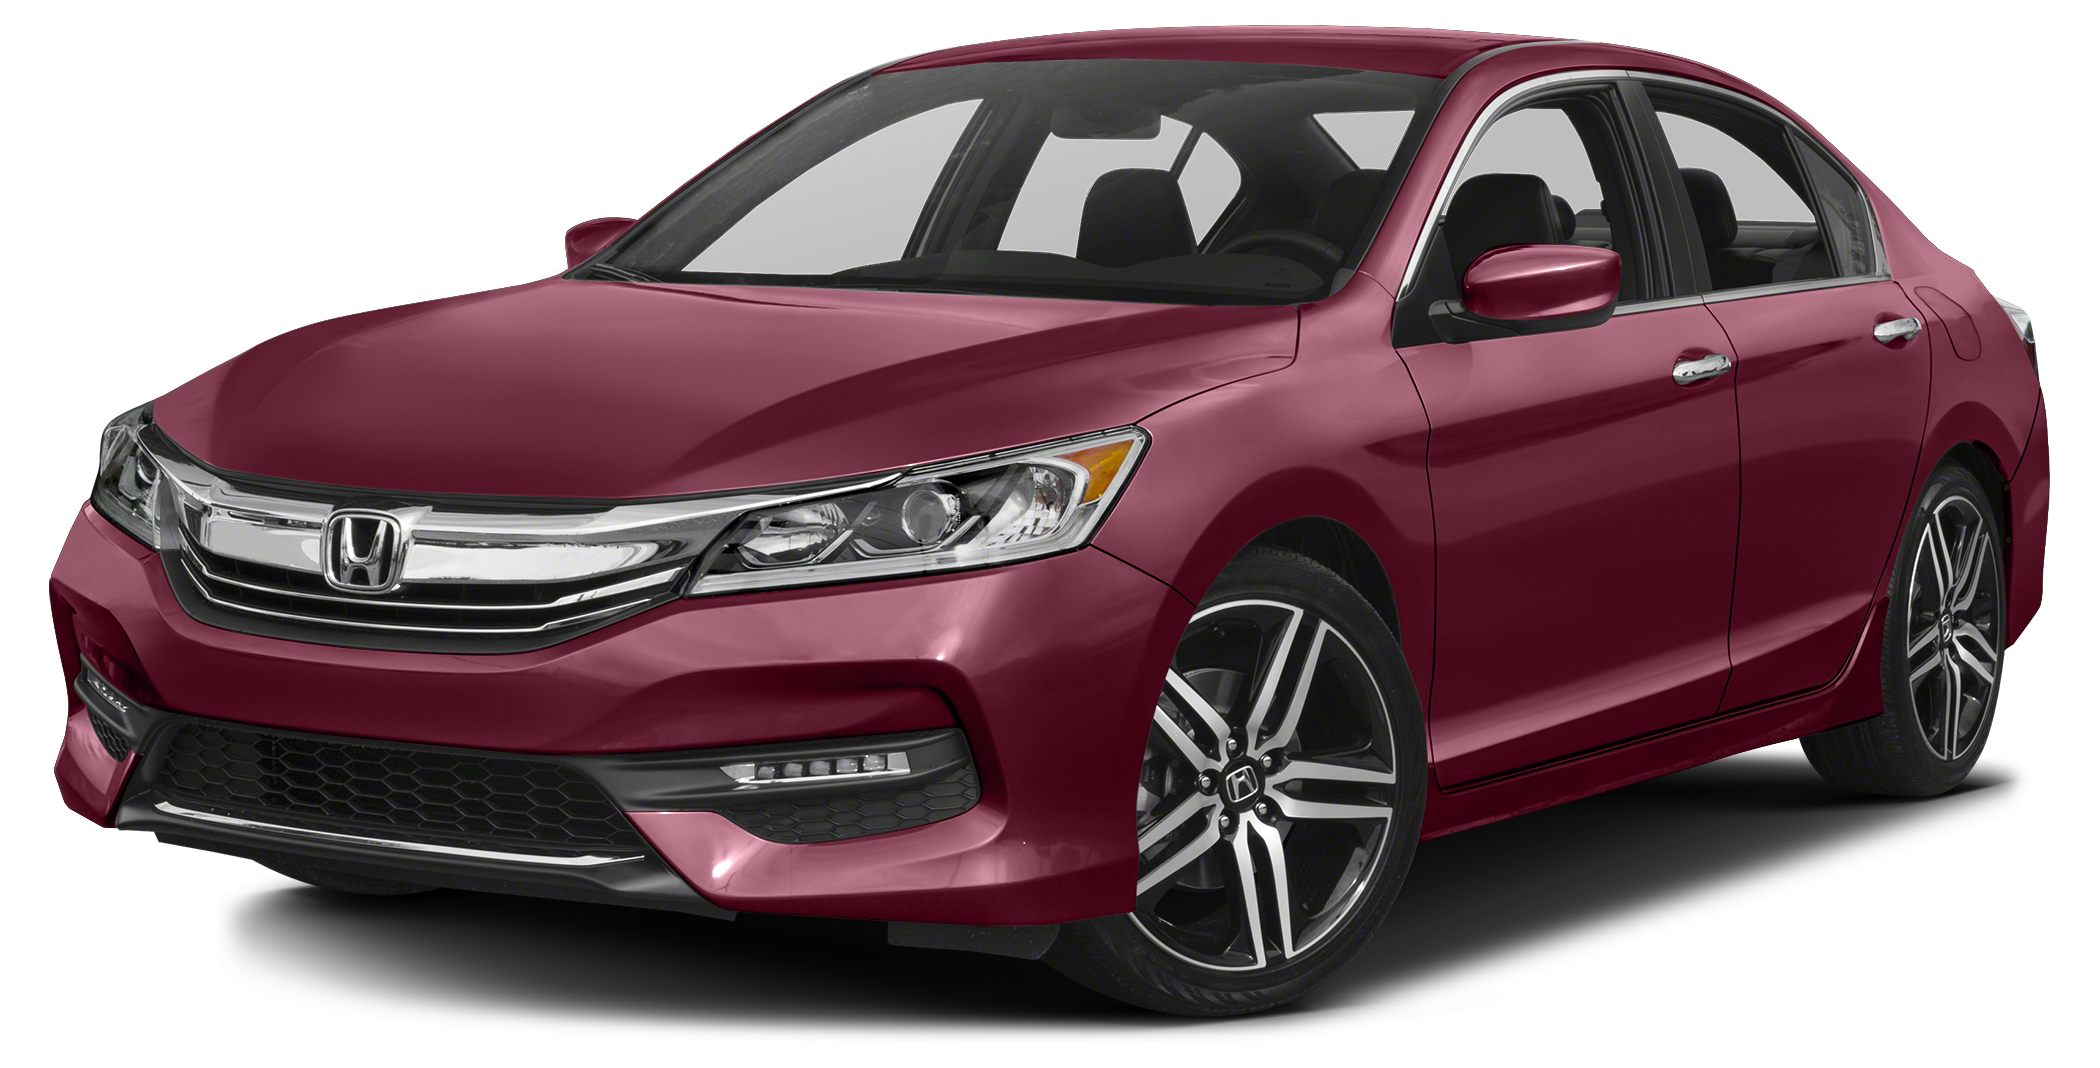 2016 Honda Accord Sport Black Cloth Steering yields an impressive performance This ones got it